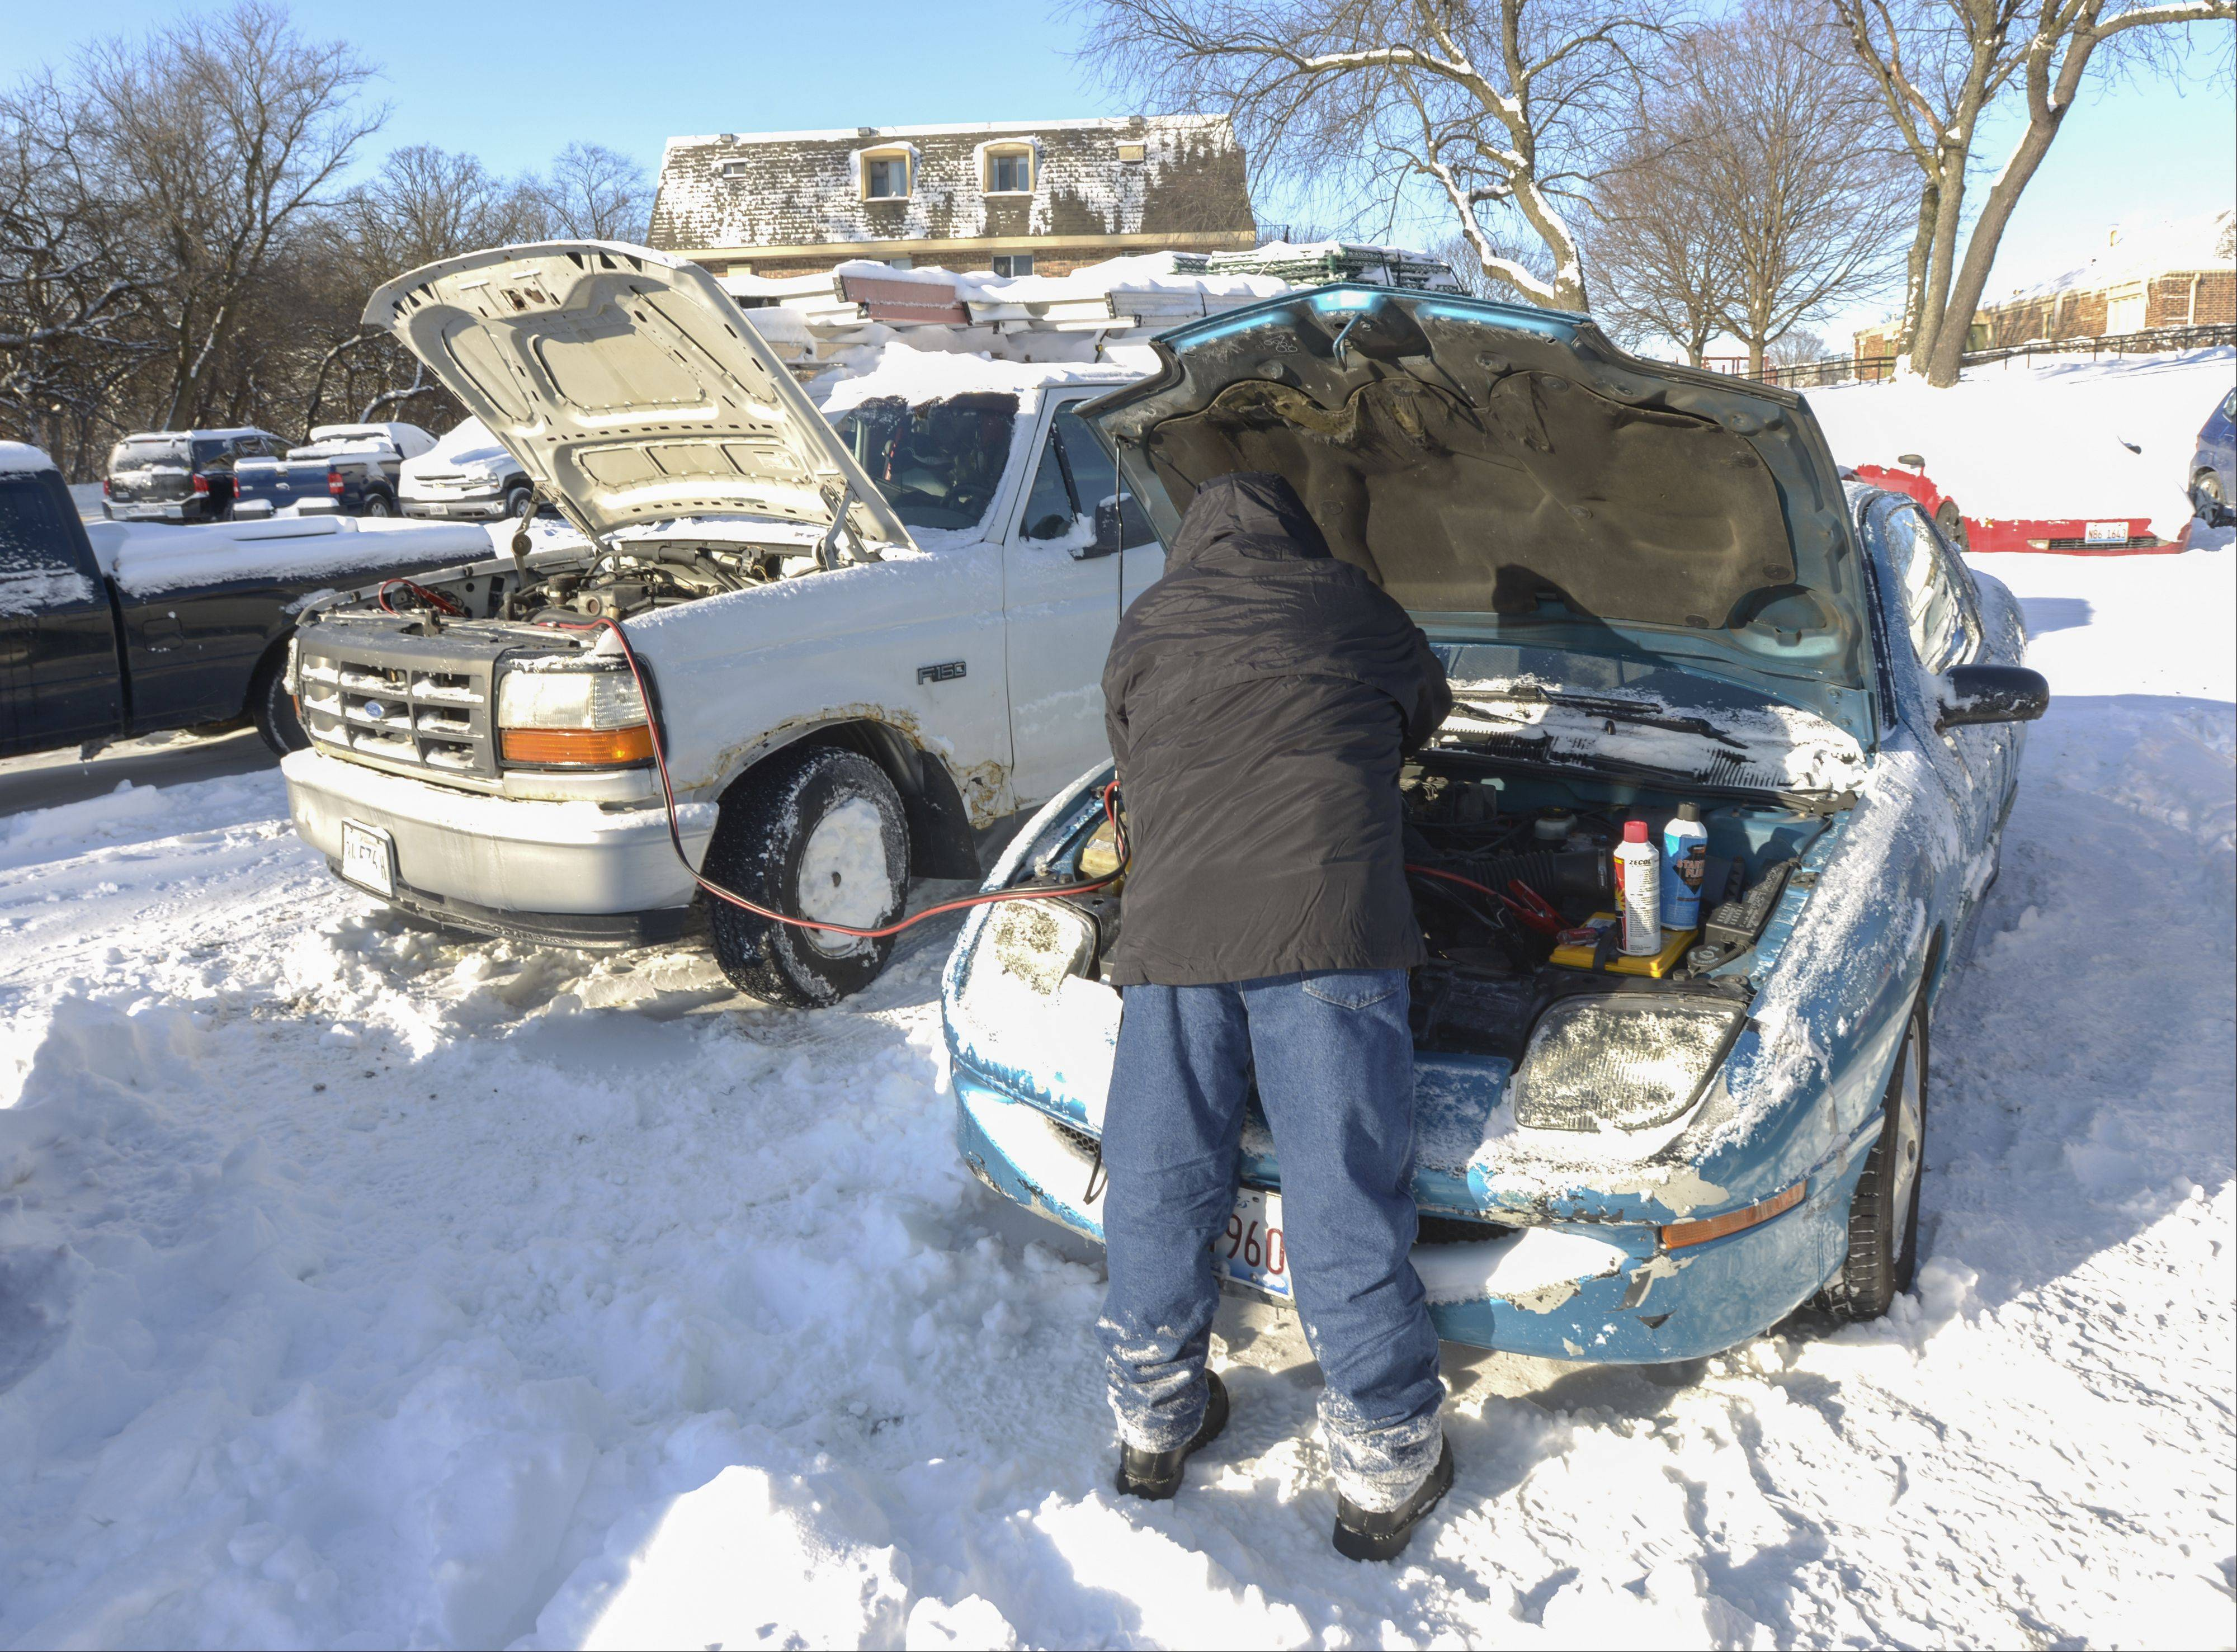 Mark Black/mblack@dailyherald.comRoberto Tiro works on getting his car started by trying to jump it with a work truck, at the Aspen Ridge Apartments in West Chicago. Tiro was having difficulty getting the car started even using some starter fluid and jumper cables.